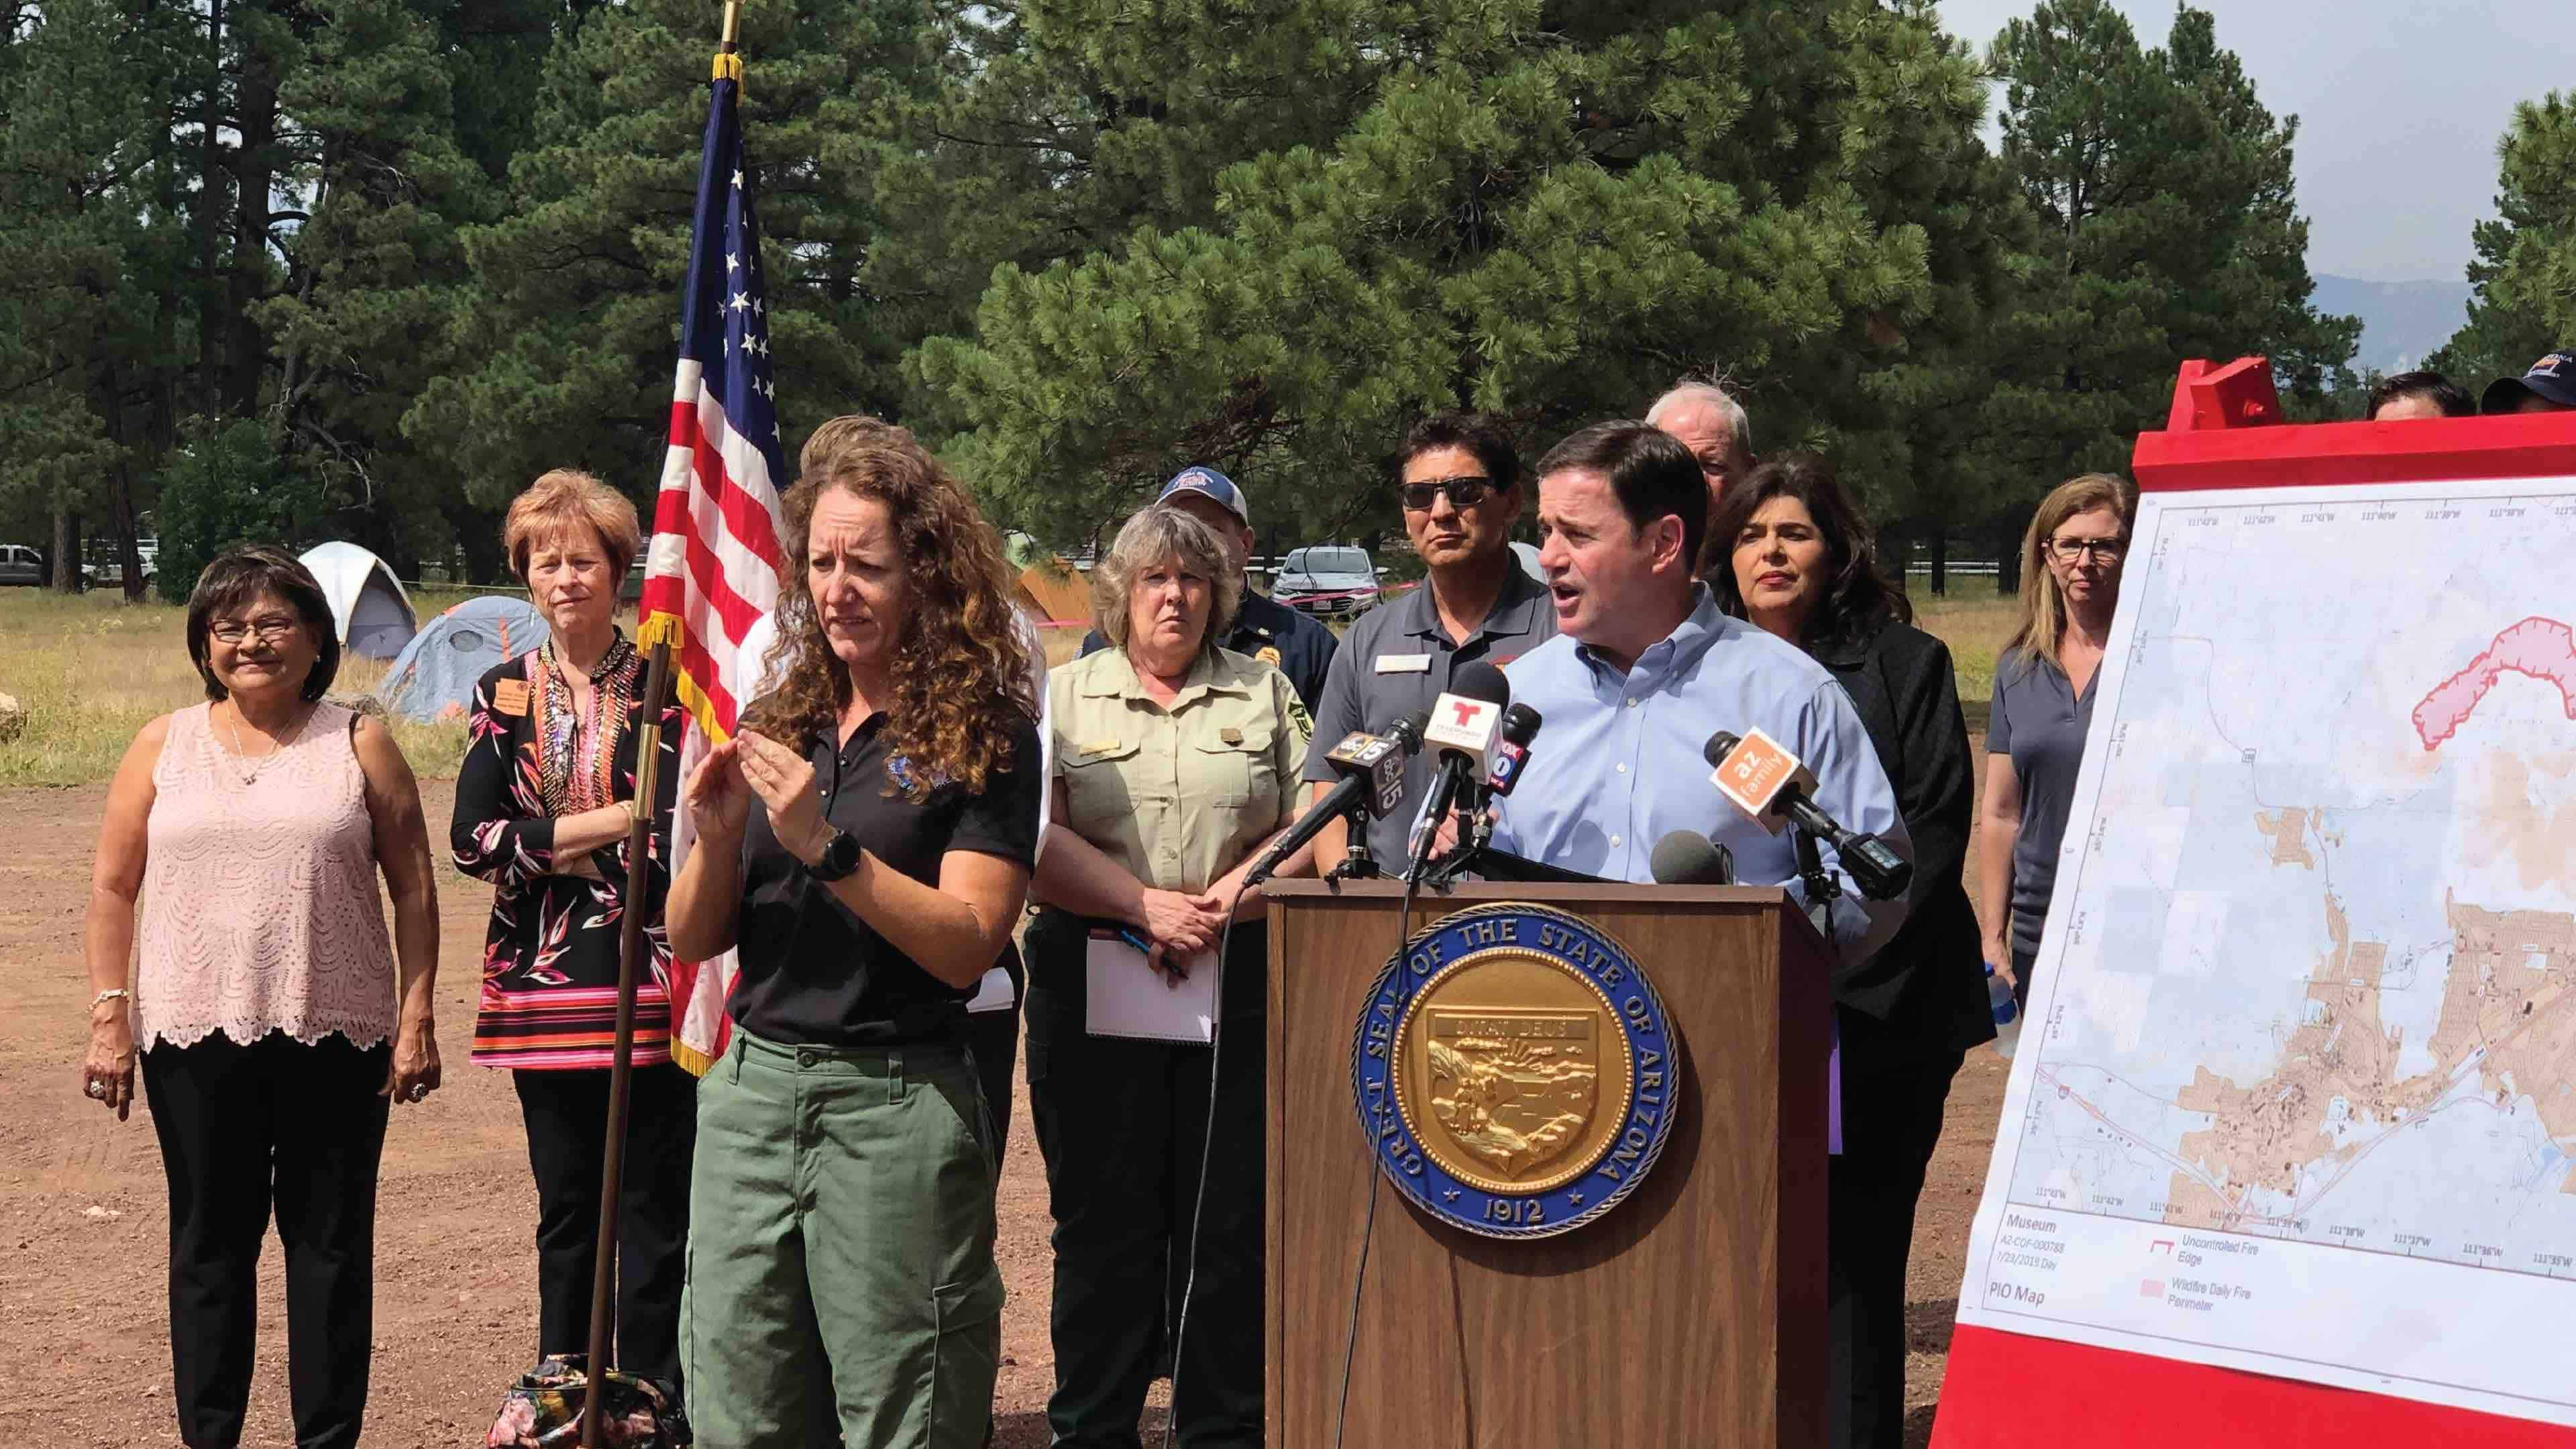 Governor Doug Ducey After Surveying the Museum Fire Declares State of Emergency